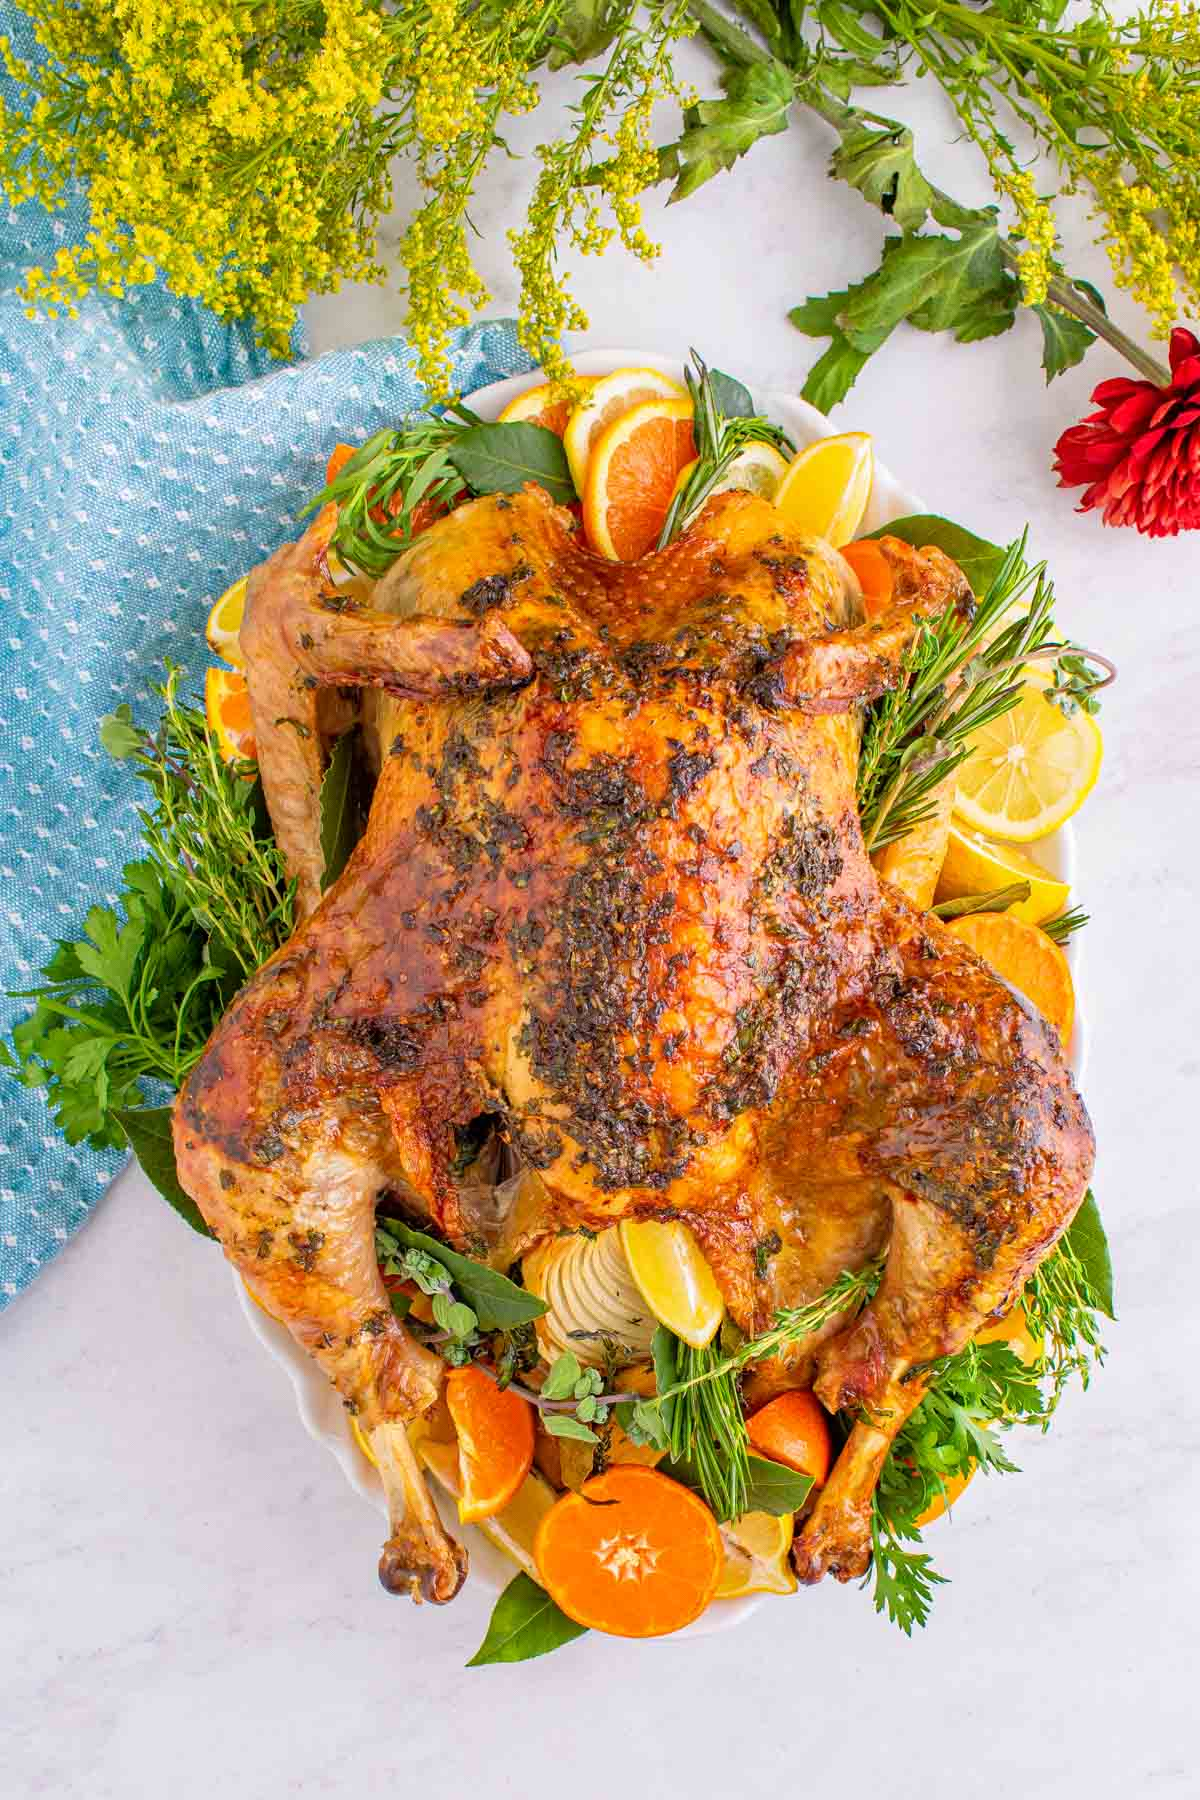 a cooked juicy roast turkey on a platter decorated with orange slices and herbs.